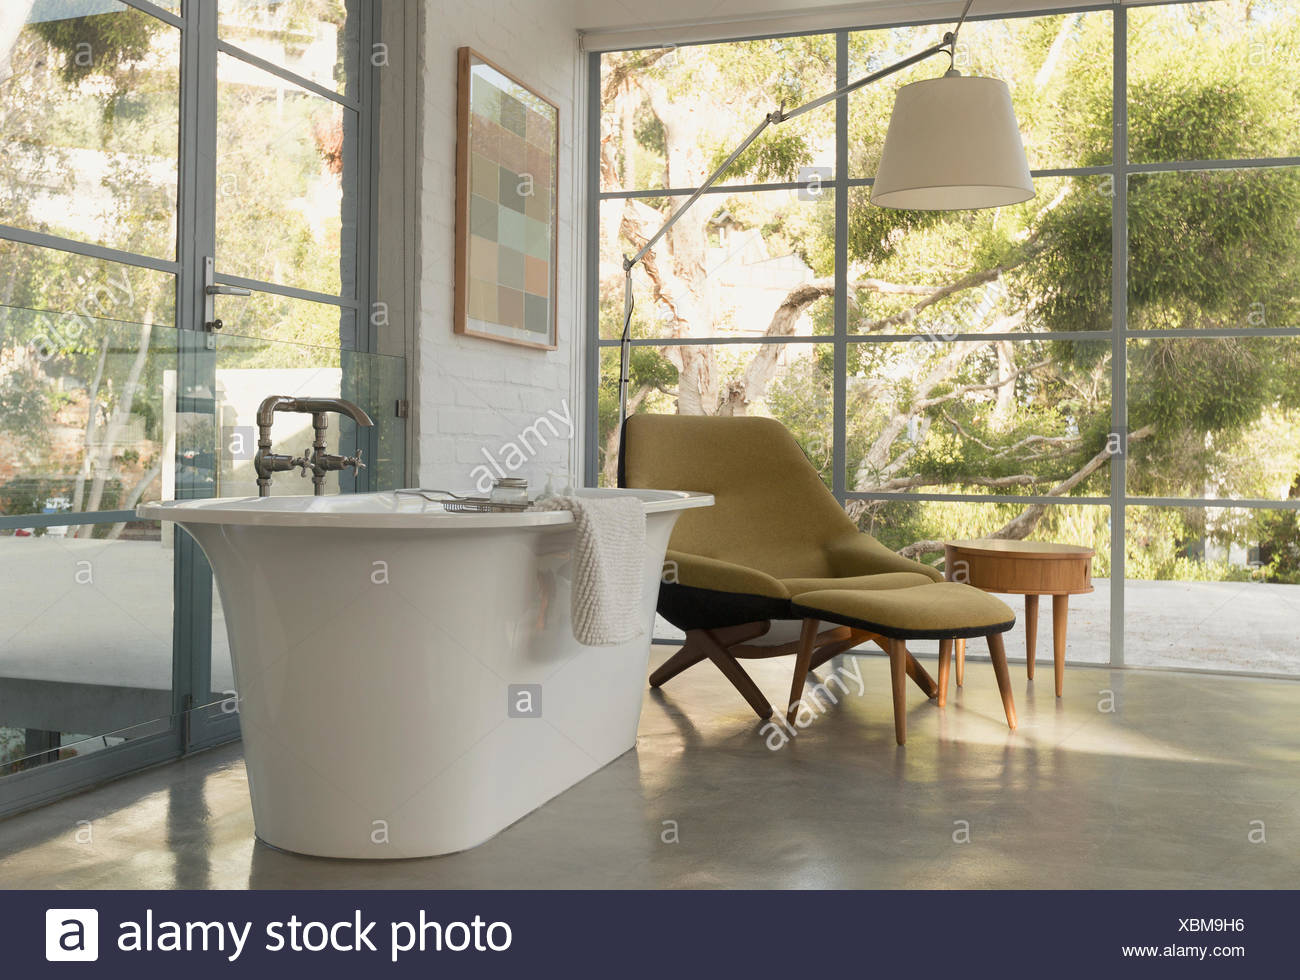 Soaking tub in home showcase interior bedroom with garden view Stock ...